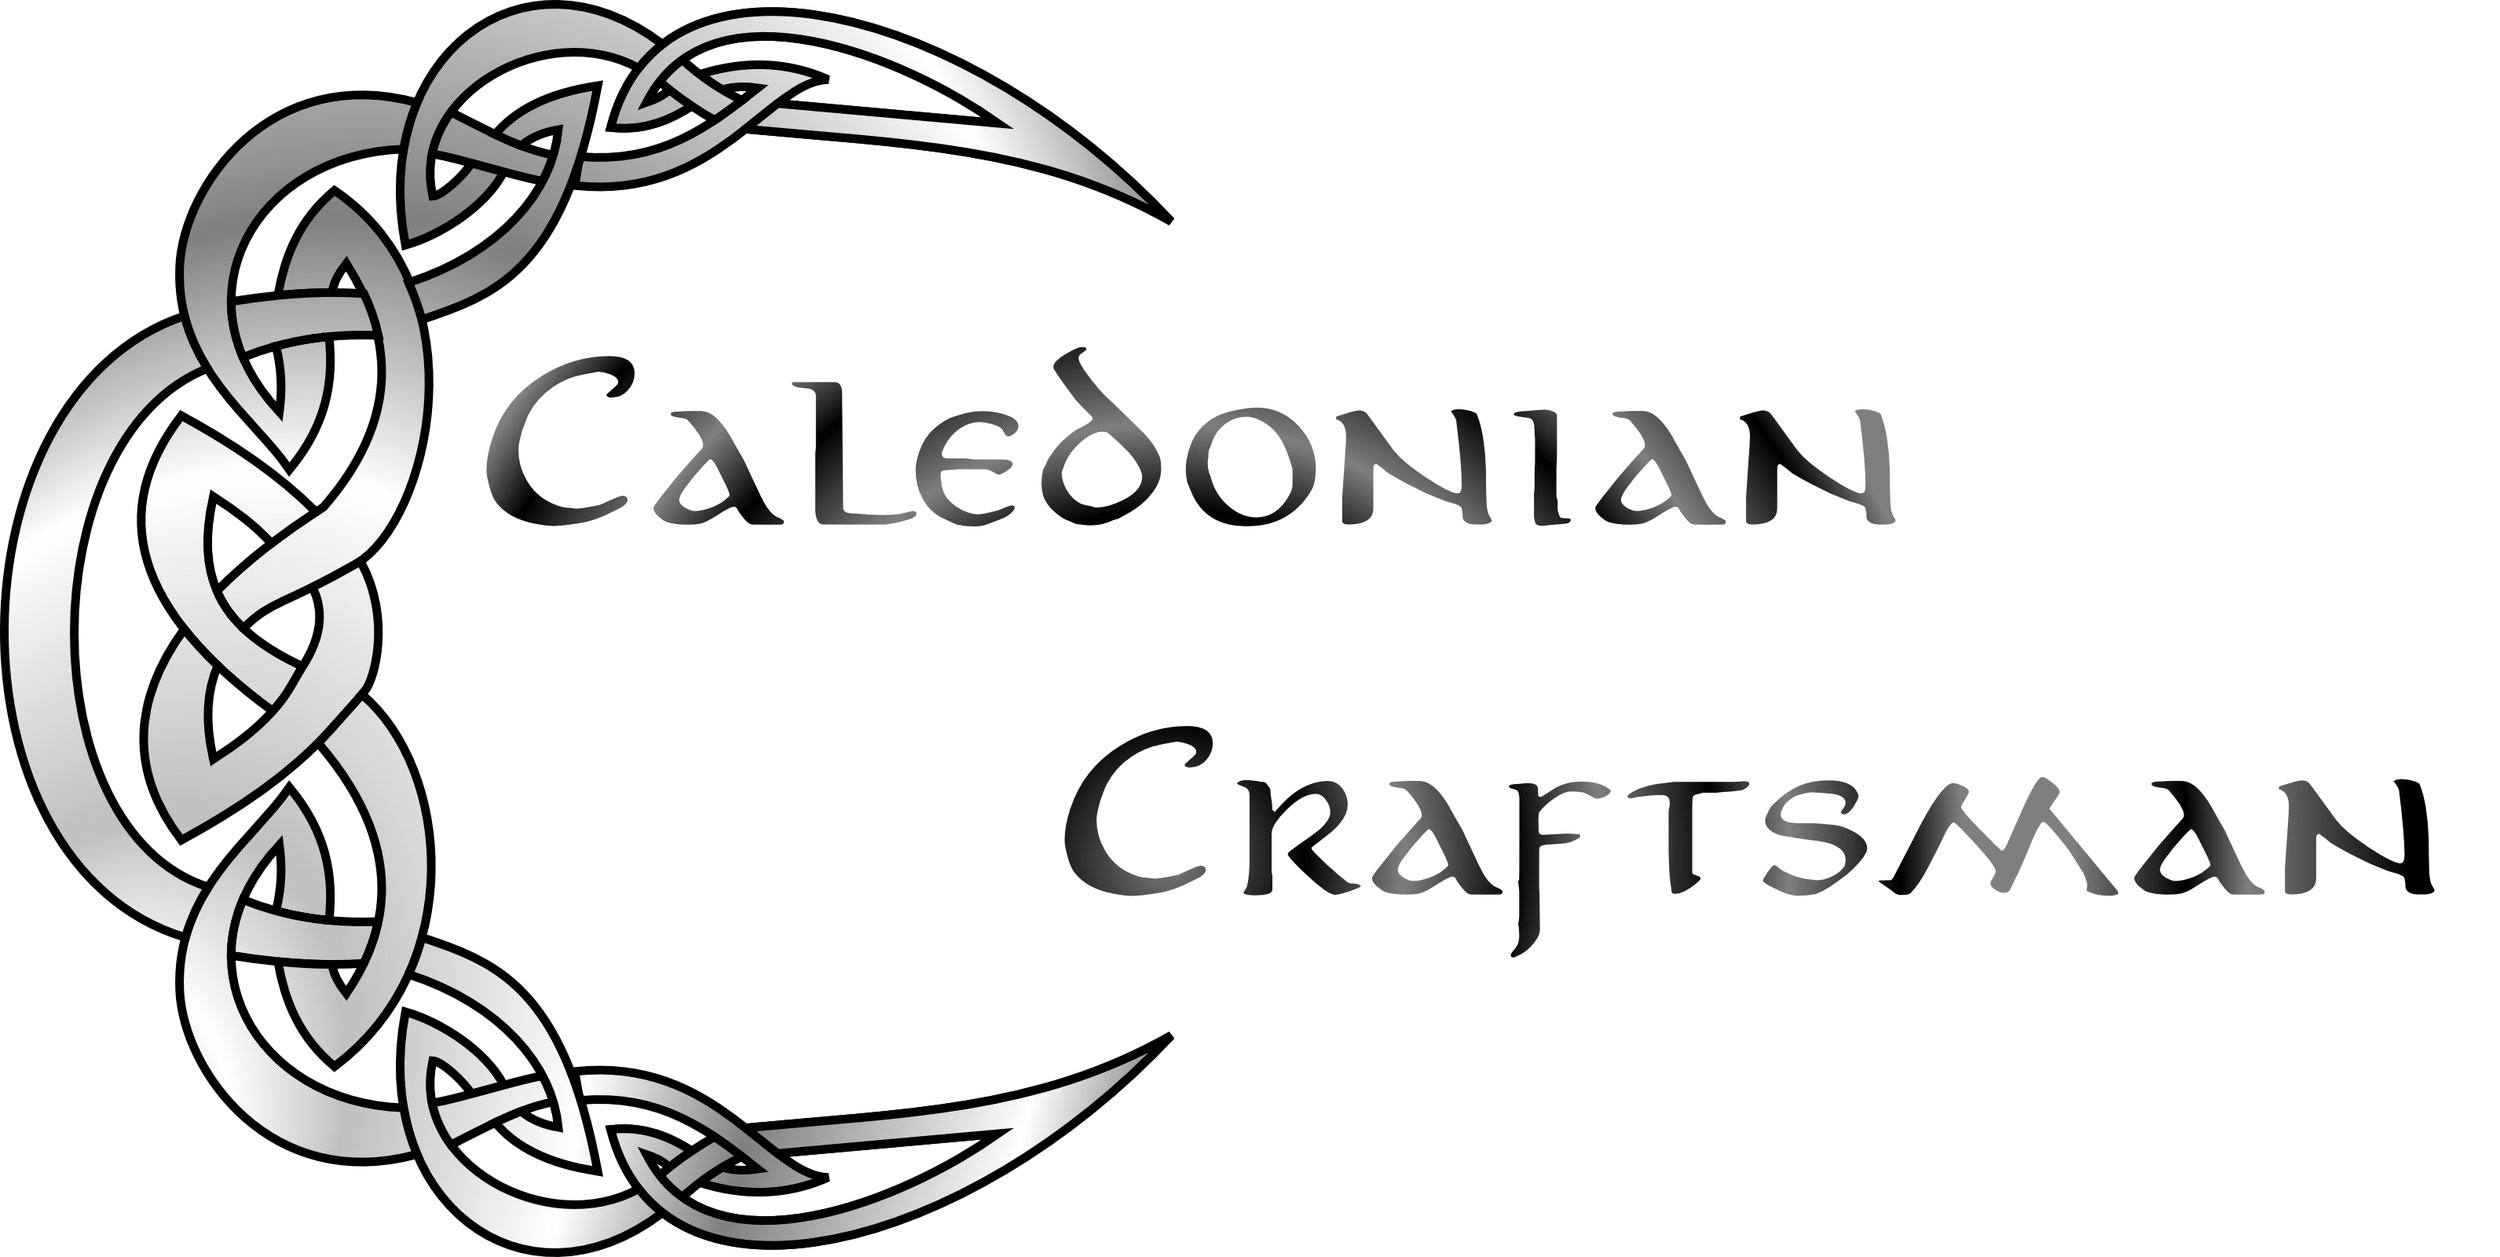 Caledonian Craftsman - We're happy to announce that this year we will be sponsored by Caledonian Craftsman.You can find their website here: http://caledoniancraftsman.comAnd like them on Facebook here: https://www.facebook.com/CaledonianCraftsman/